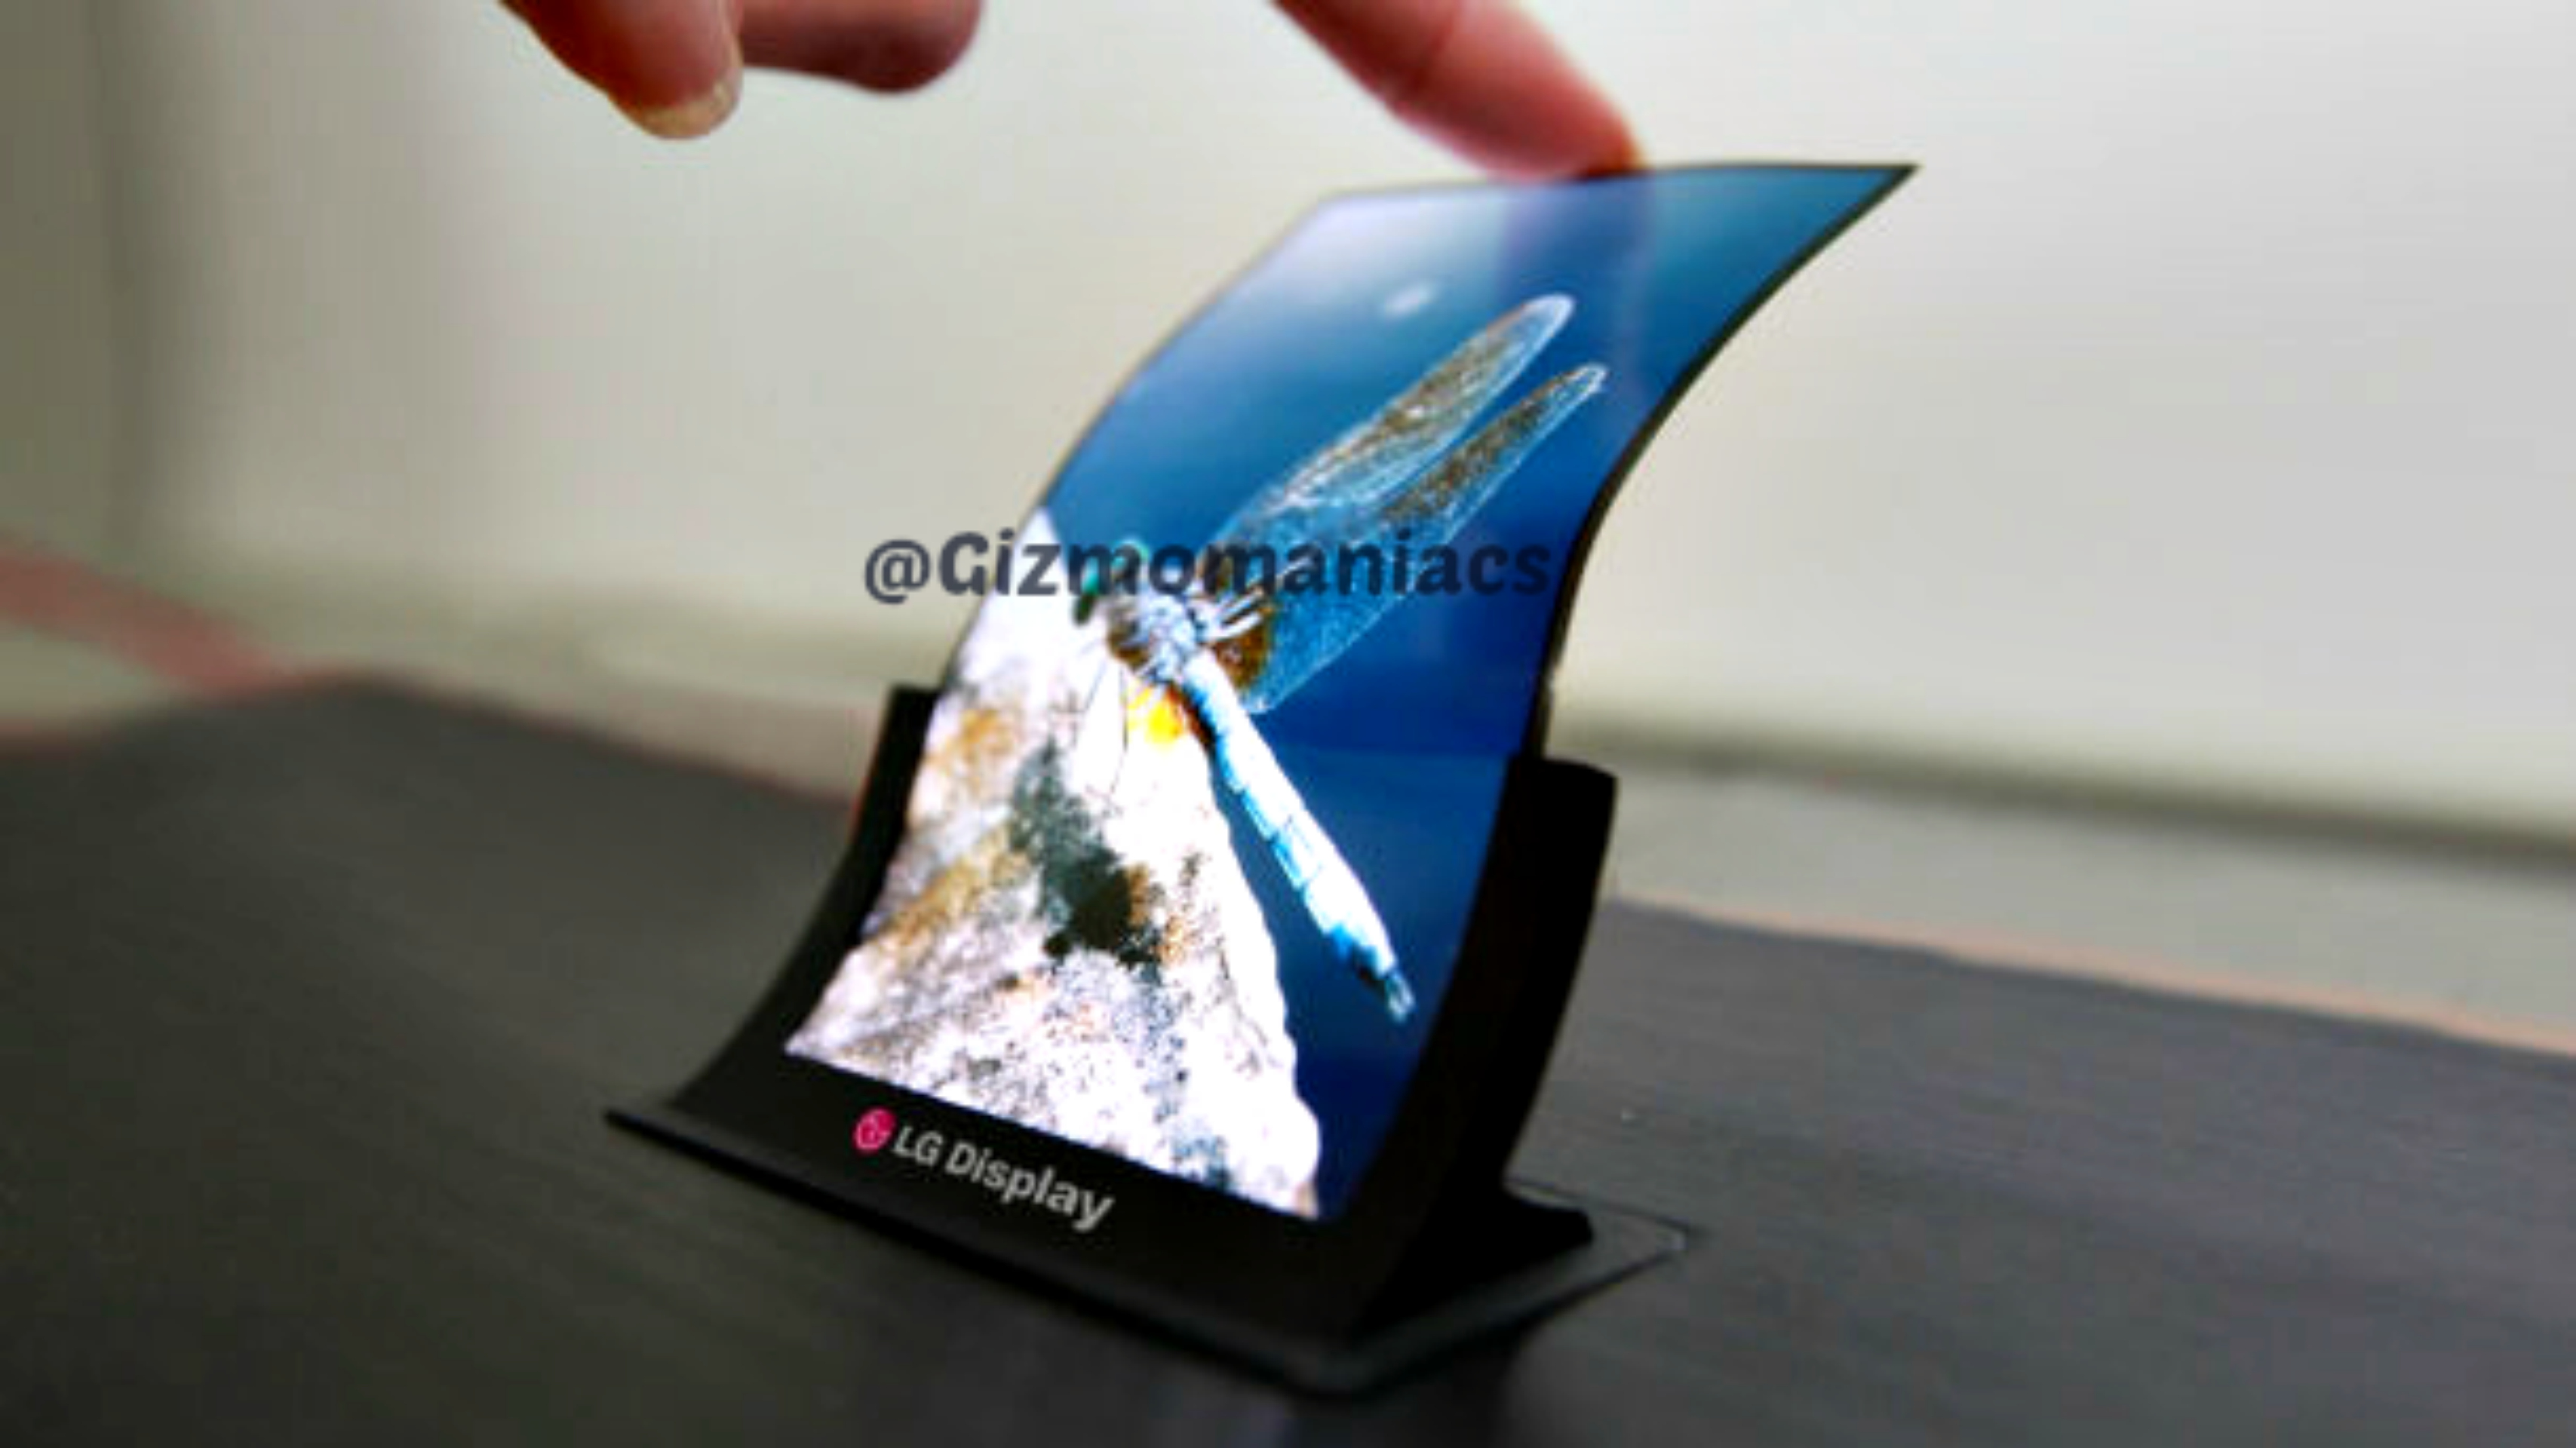 LG curved display smartphone_1